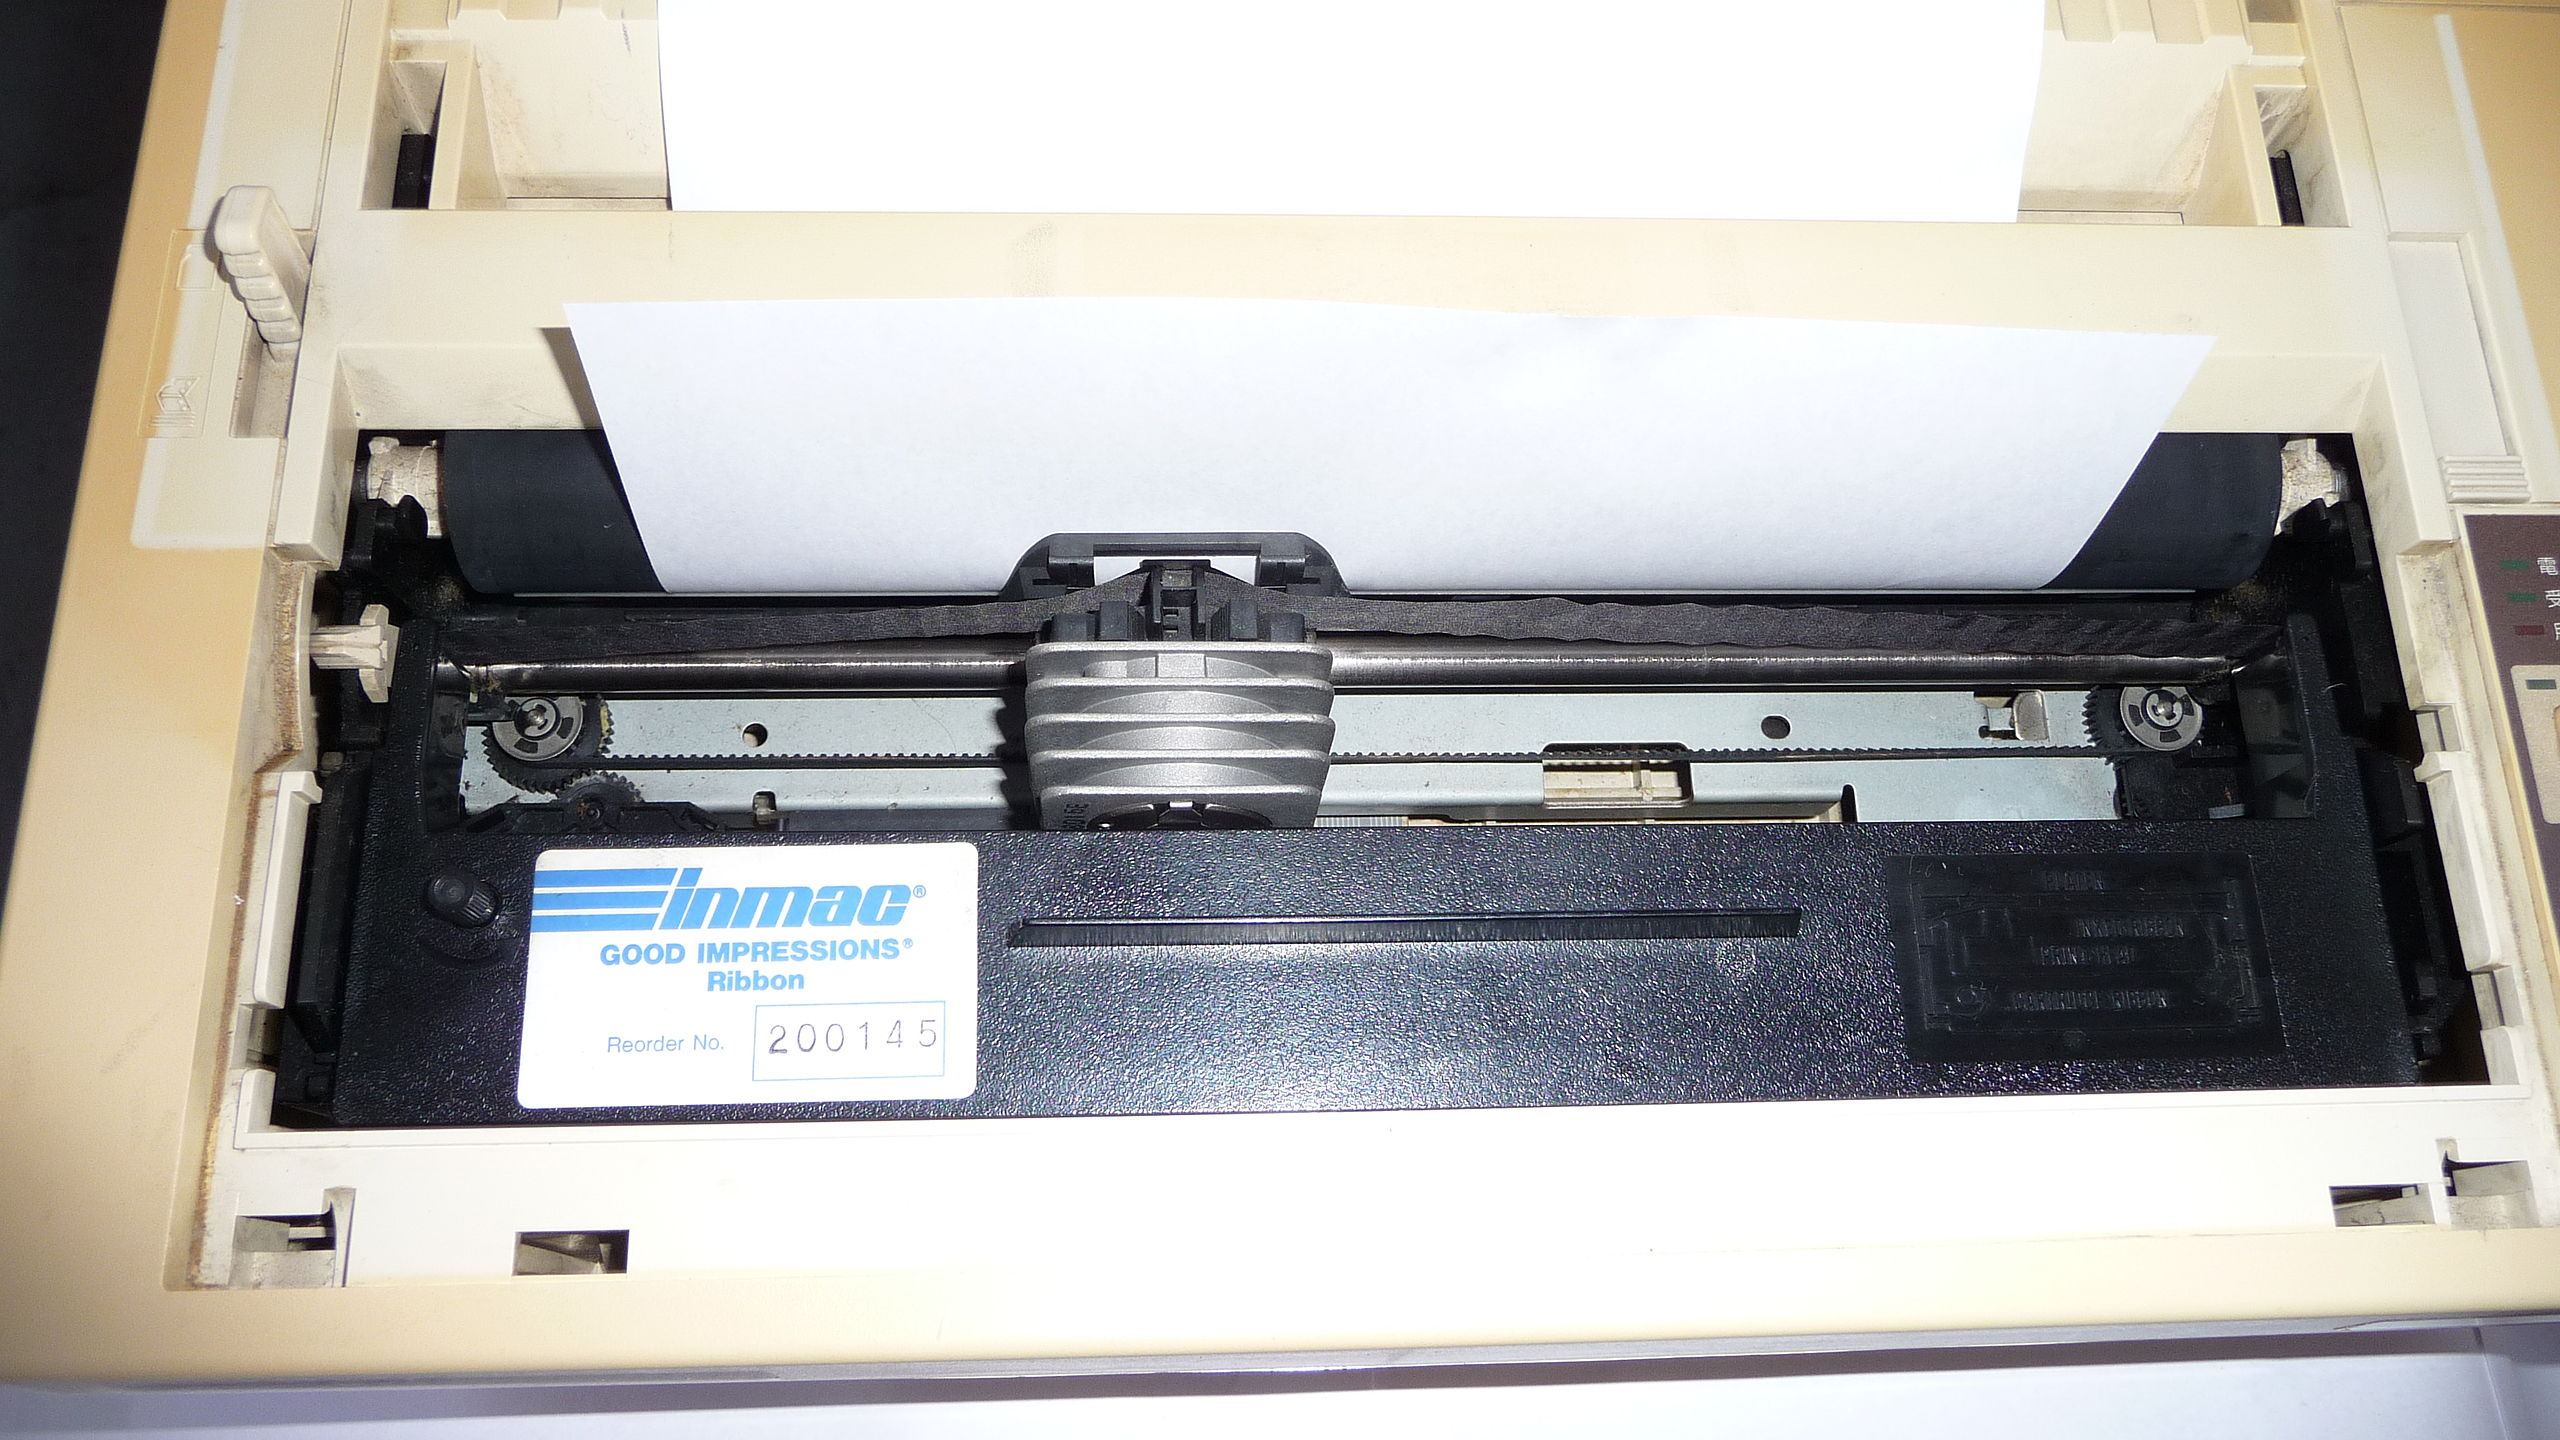 The cover removed (for photo shot), Dot matrix printer Impact type. EPSON VP-500 sold in 1989. 80 character/line, Speed: 67 character/second. Centronics IEEE 1284 interface. ASCII and Japanese character set up to Kanji. Print head with 43 x 43 X 22mm size heat sink. ESC/P 24-J84, Inmac ink ribbon cartridge with black ink.